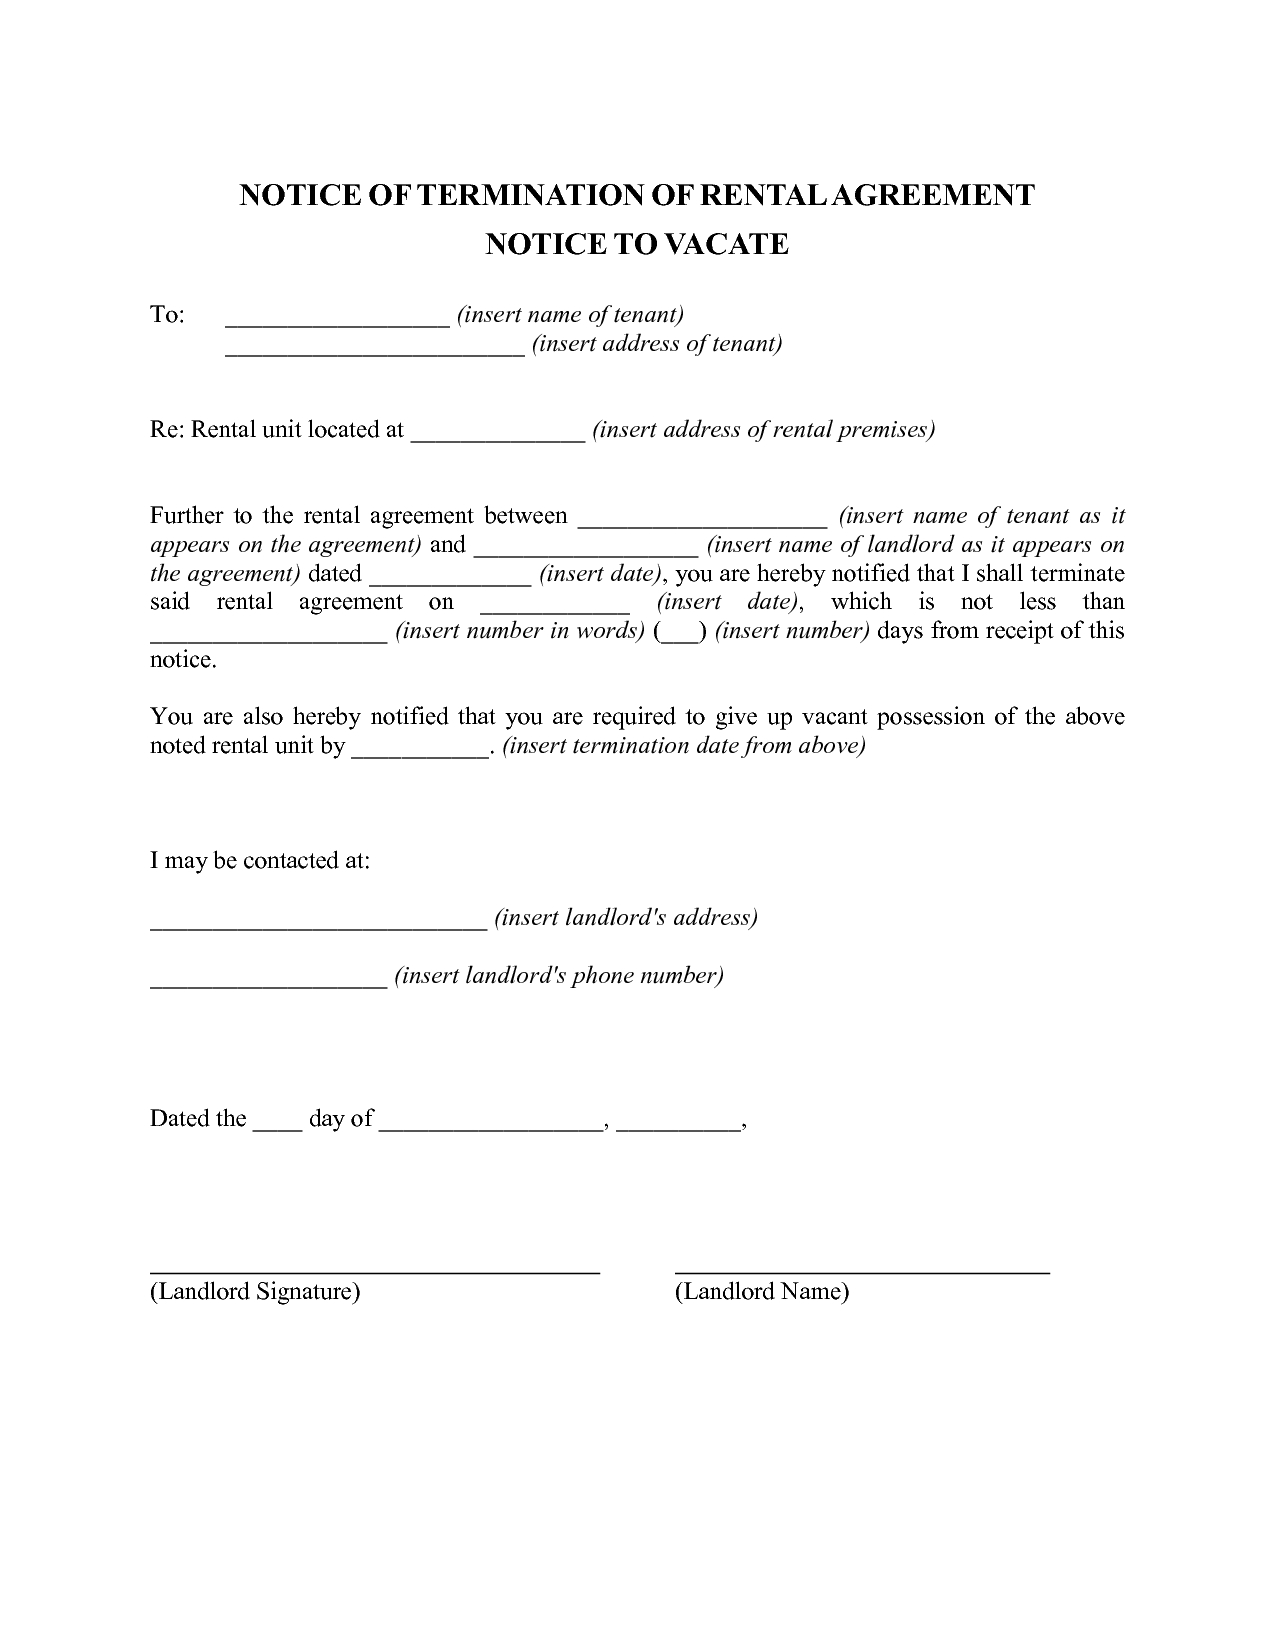 Tenant Warning Letter Template - Tenancy Resignation Letter Letter format formal Sample